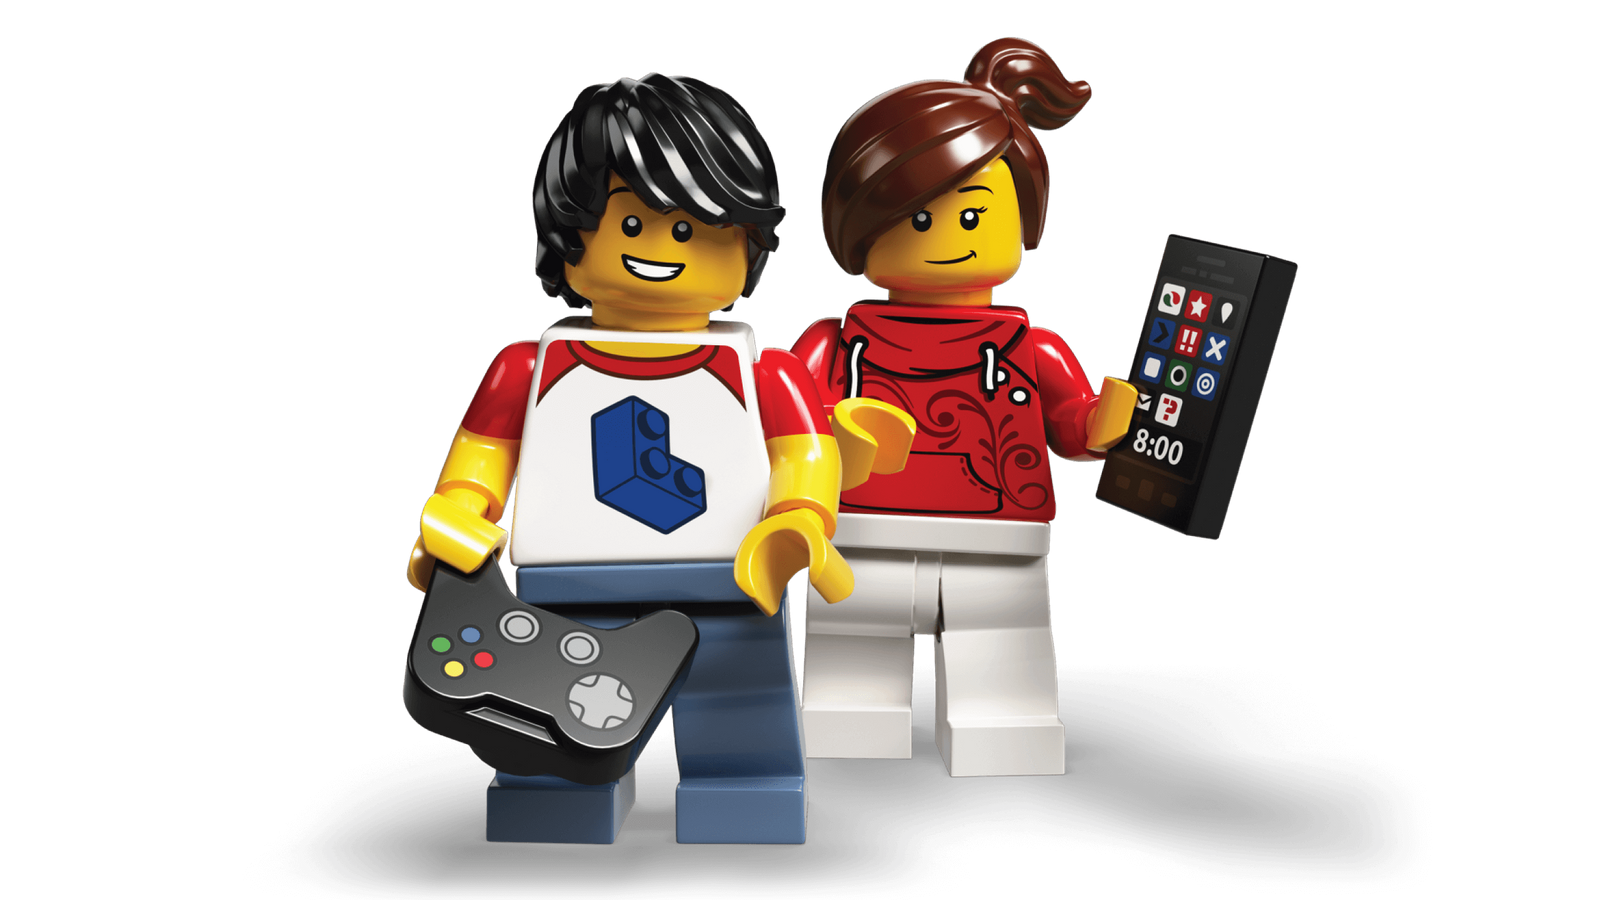 Ninjago svg lego. Games apps and console